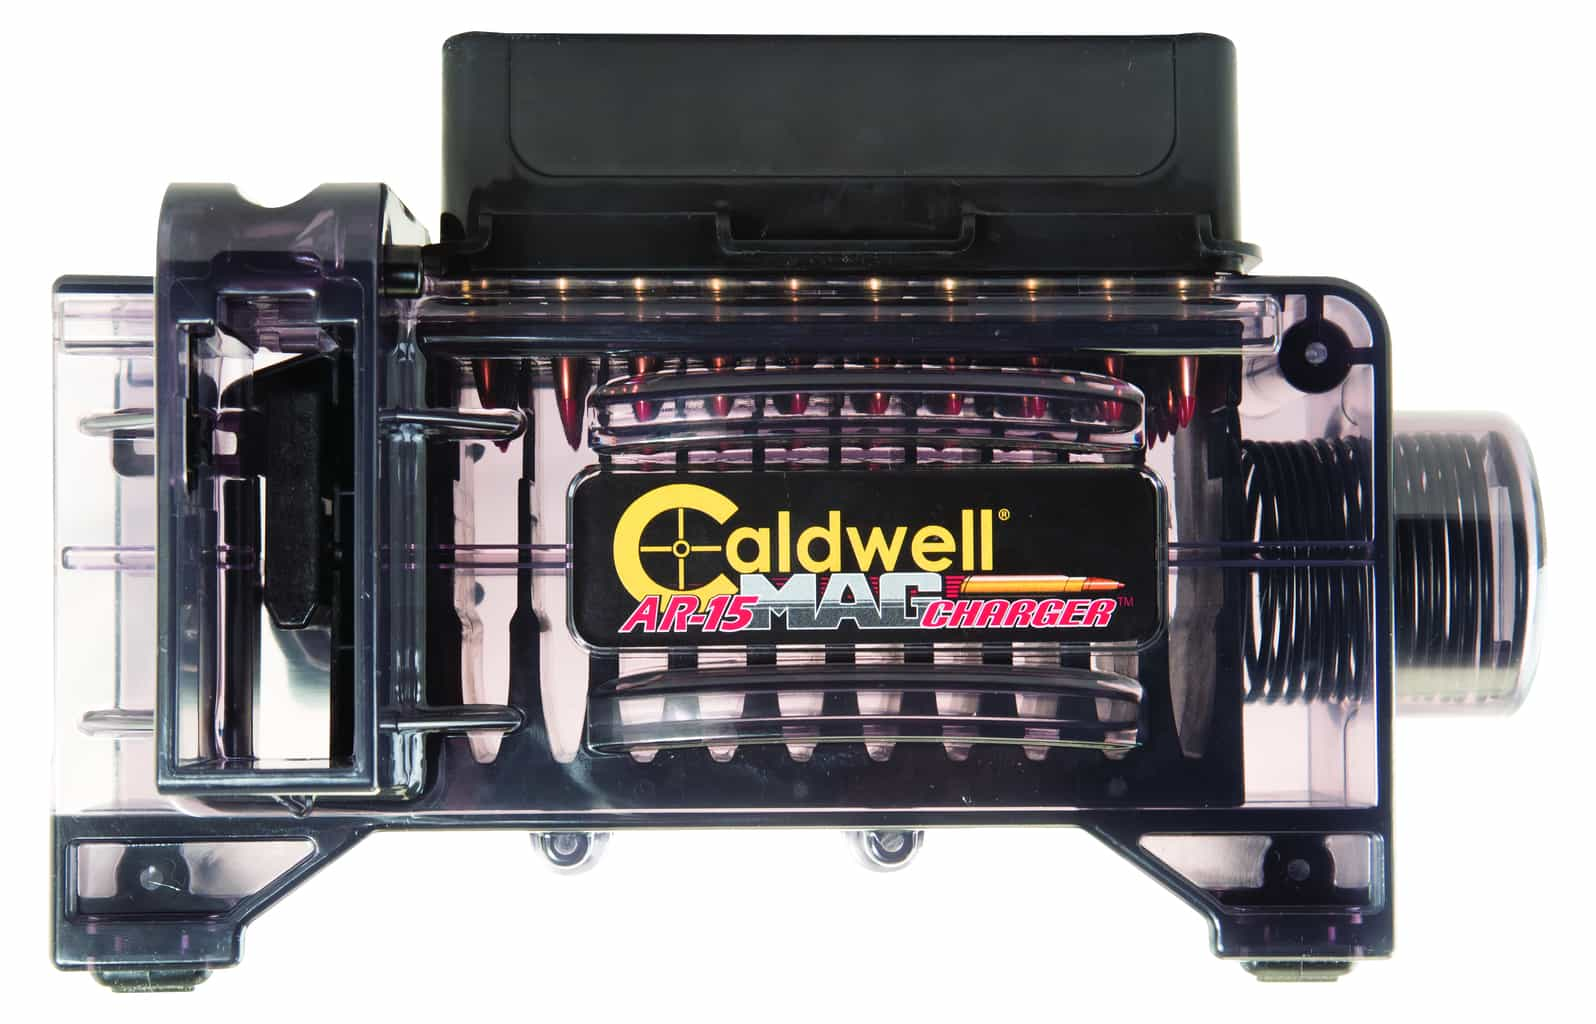 Caldwell® AK Mag Charger™ Ammo Box-7.62x39 (5 Pack) - 397623 Loading Charger1